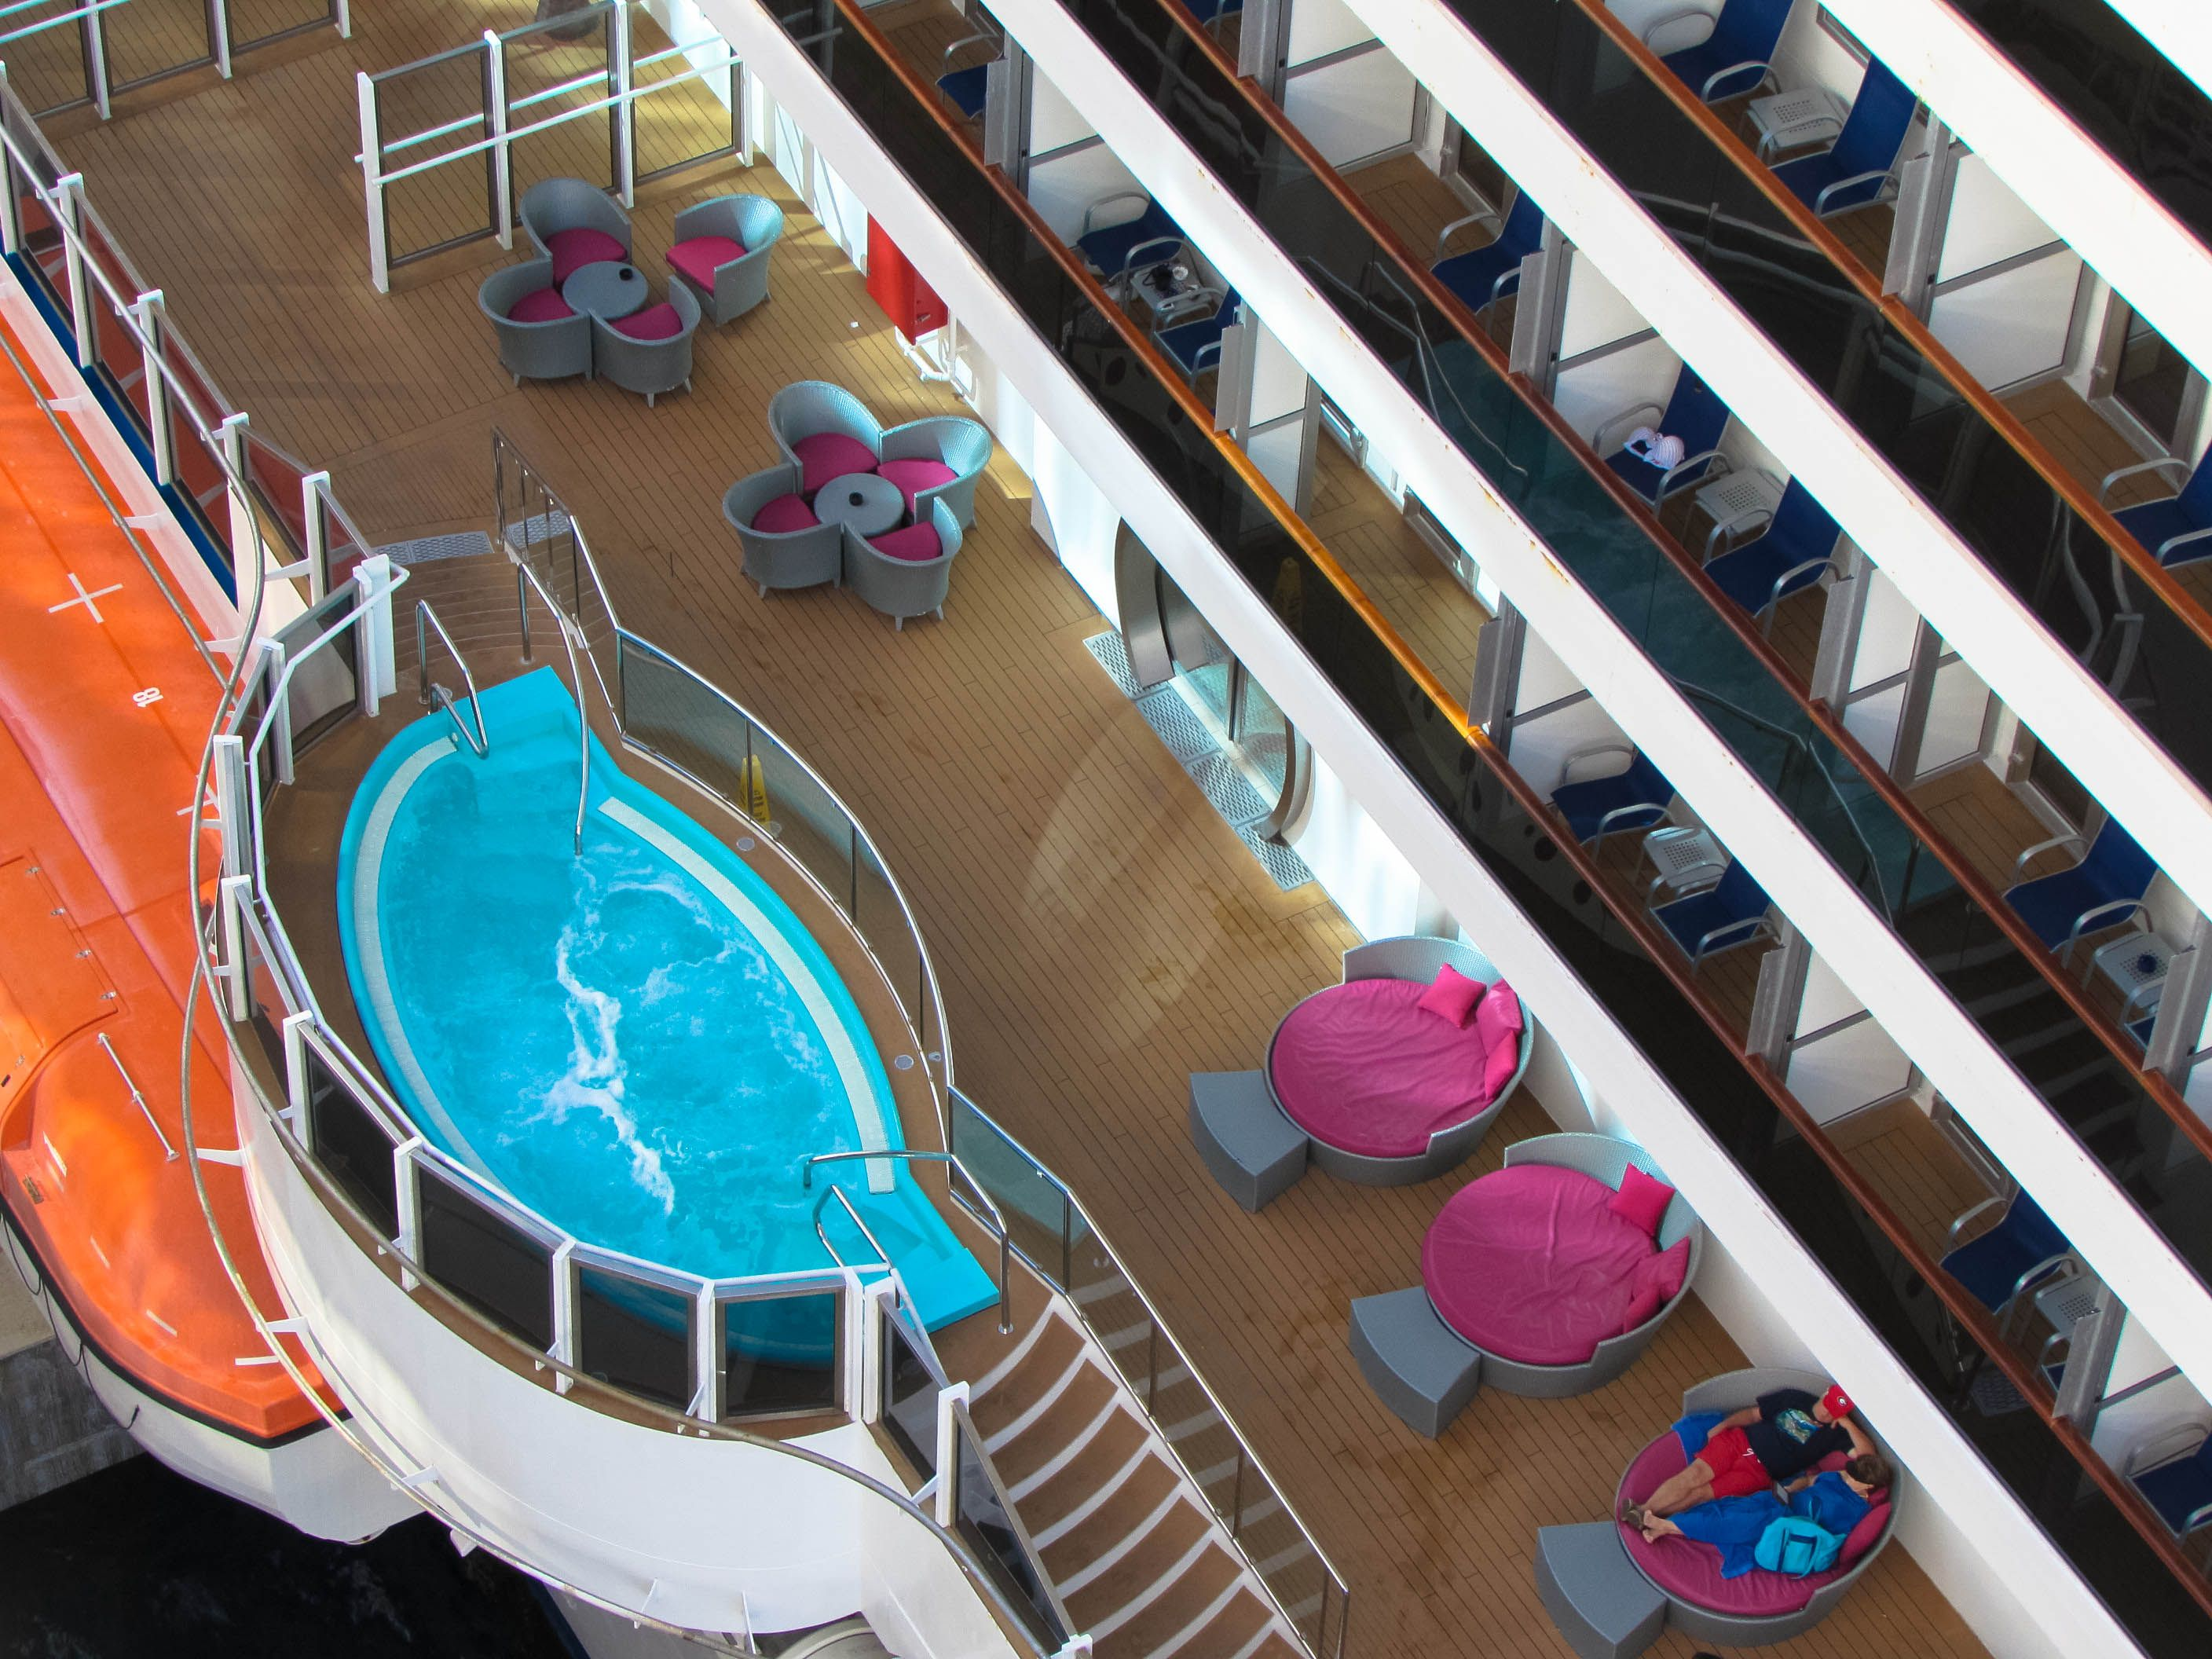 Before one embarks on a cruise, they often ask the question, &qout;What are some tips and secrets to make the most out of my cruise?&qout;. It seems that everyone is looking for the &qout;must do's&qout; so they do not miss anything.  But who can blame them, they are on vacation and want to make the most of it. As …